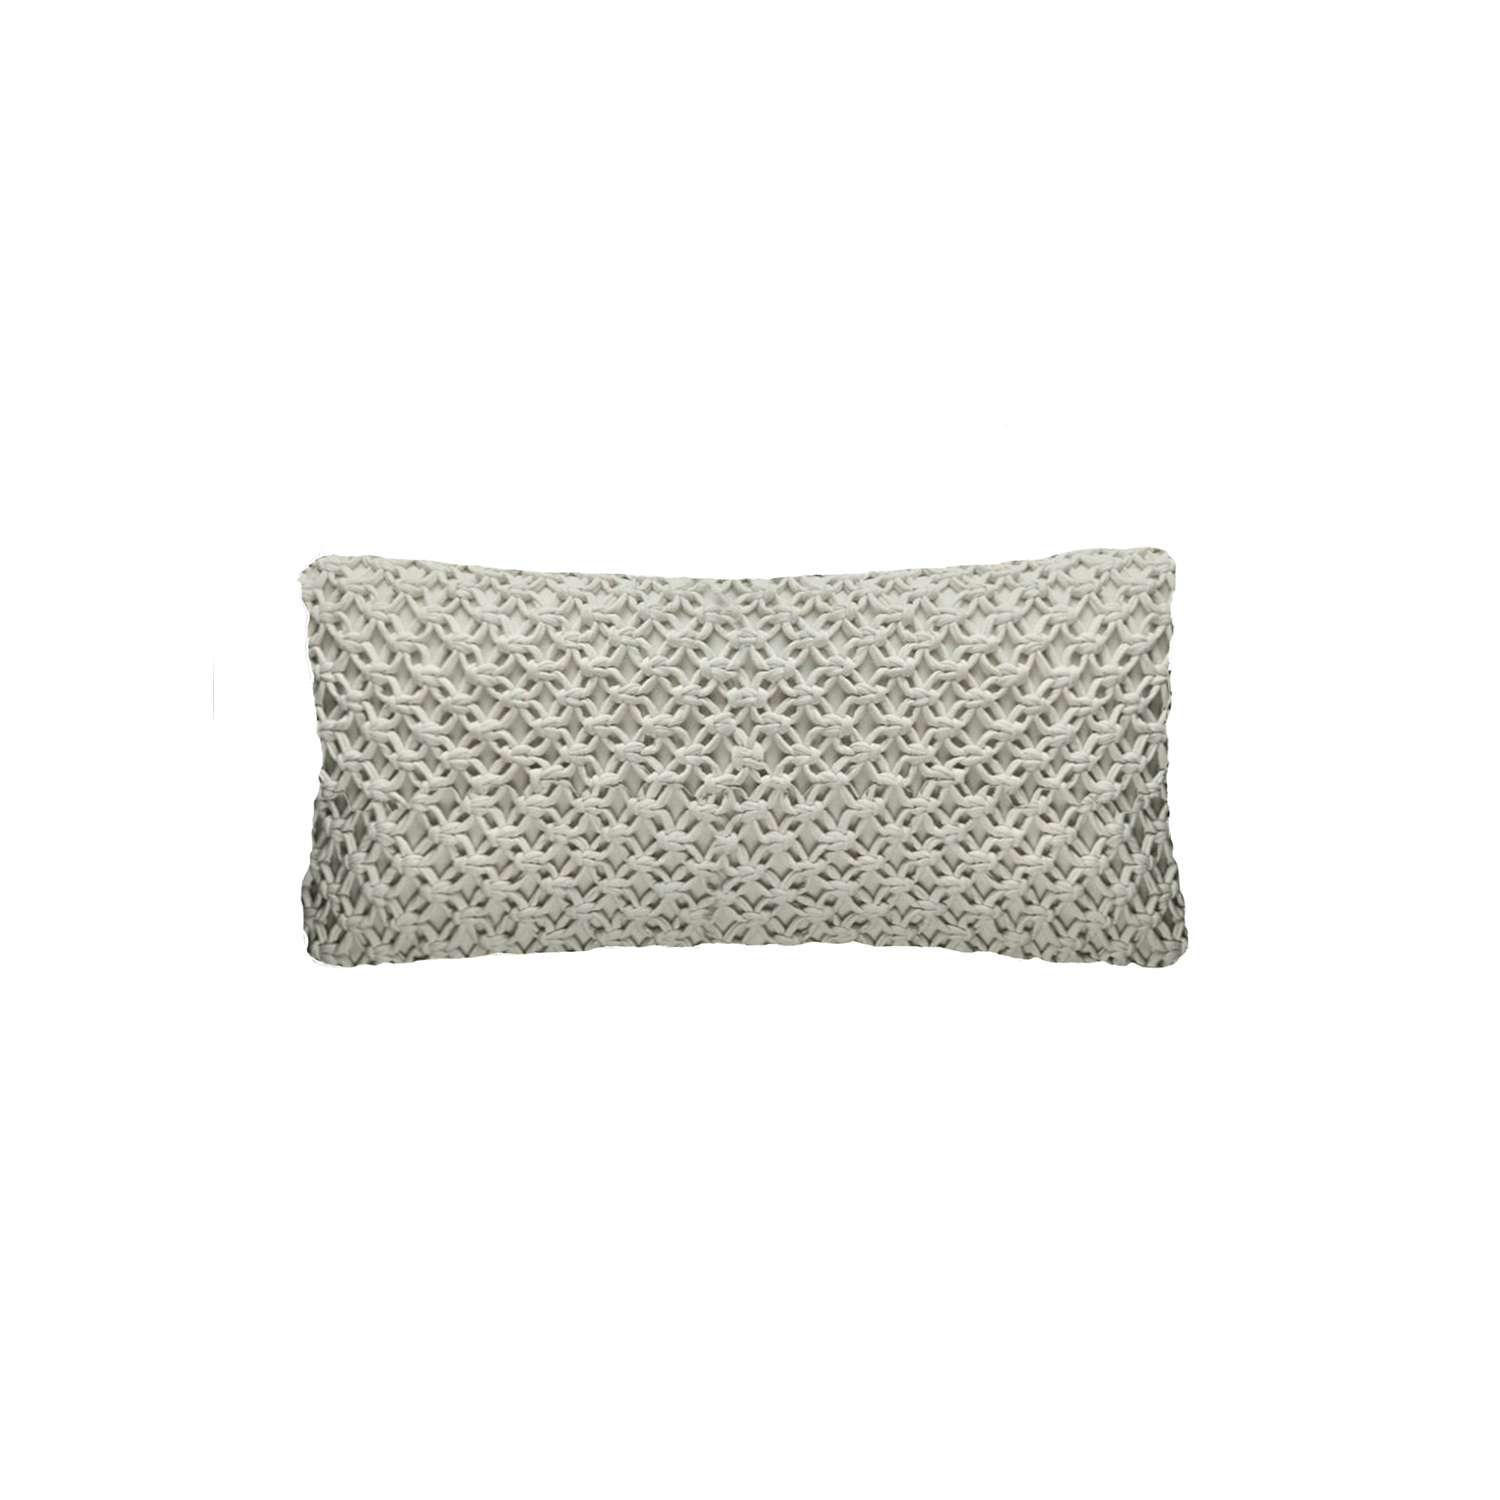 Macrame Knitted Cotton Cushion Small - The Macrame Line is carefully knitted within a trained community of women that found in their craft a way to provide for their families, each one of these cushions and throws is unique.  Elisa Atheniense Home soft indoors collection is made with natural cotton fibres, eco-friendly, handwoven or elaborated using traditional hand-loom techniques. The use of organic materials brings softness and comfort to the space. This collection combines their mission for responsible sourcing and manufacturing.  The hand woven cotton, washable cushion cover is made in Brazil and the inner cushion is made in the UK. All cushions come with Hollow Fibre filling. European Duck Feathers are optional upon request at an extra cost. Please enquire for more information and see colour chart for reference.   | Matter of Stuff